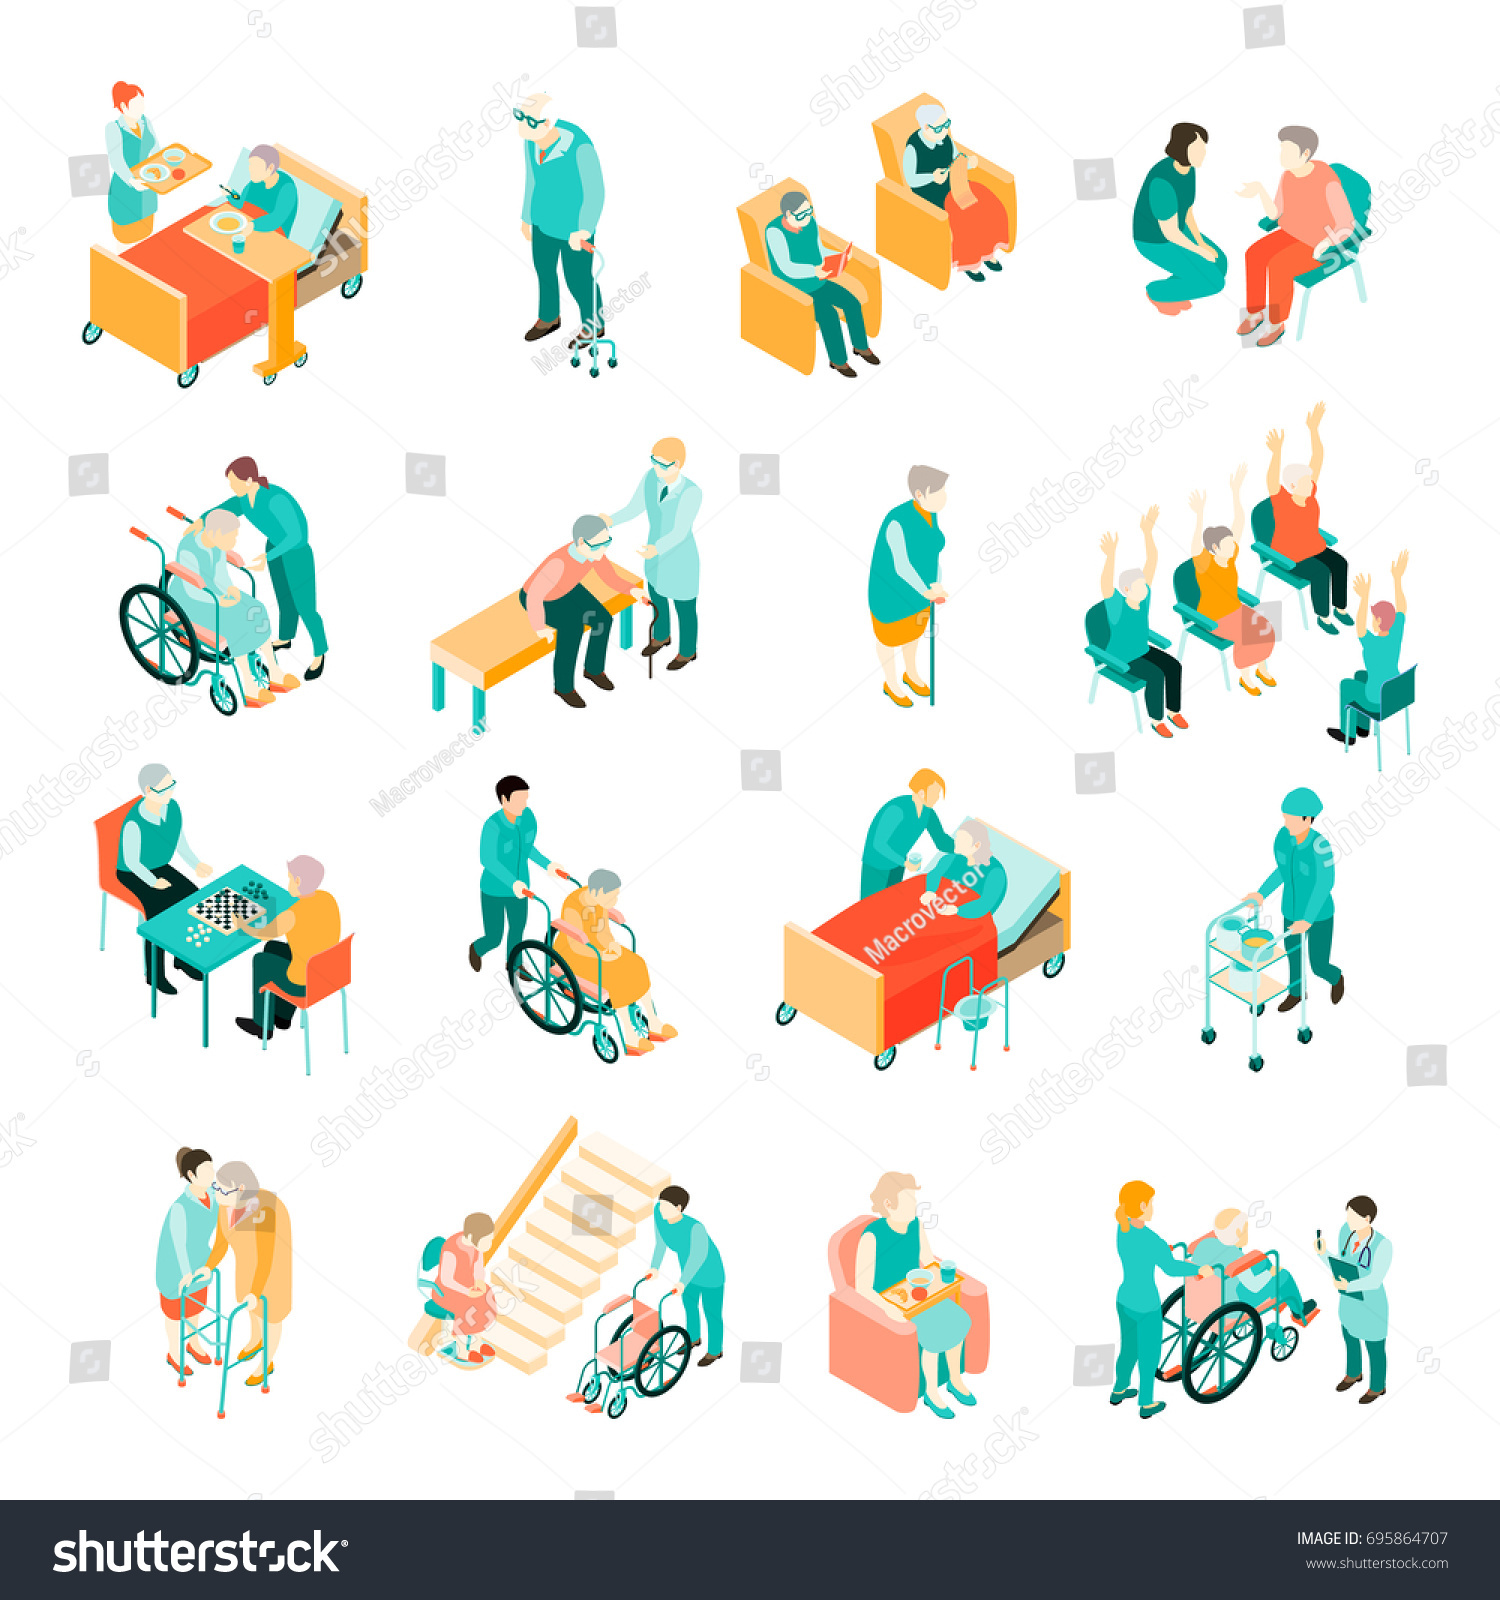 Isometric Exercises For Seniors: Isometric Set Elderly People Different Situations Stock